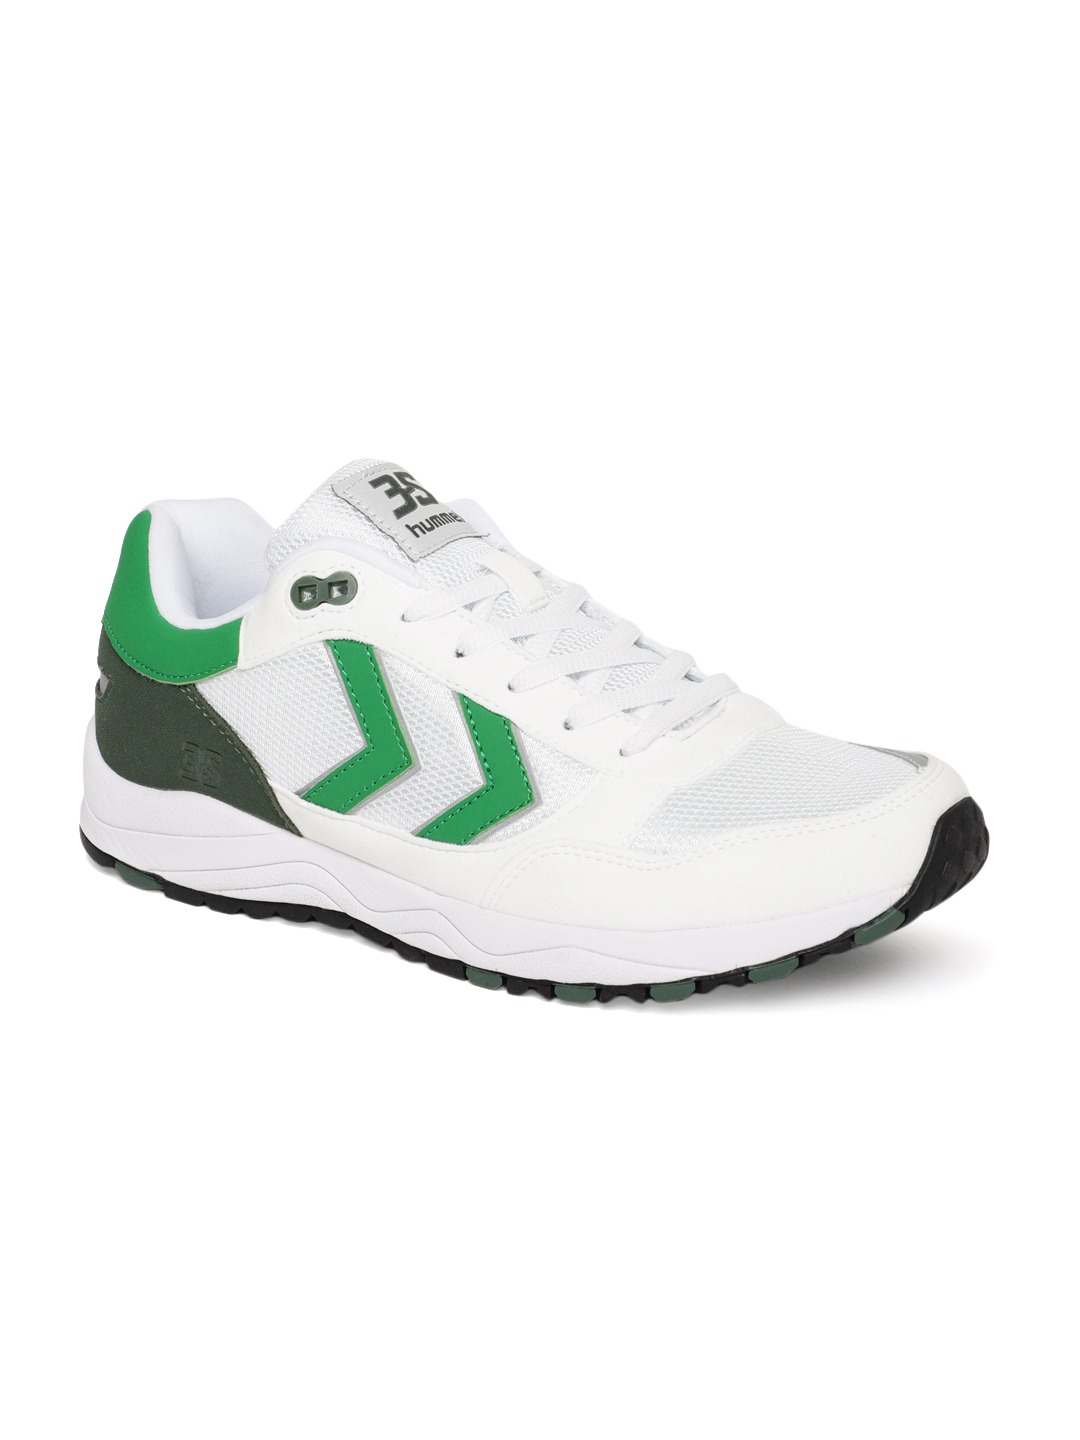 3-S SPORT White Sneakers